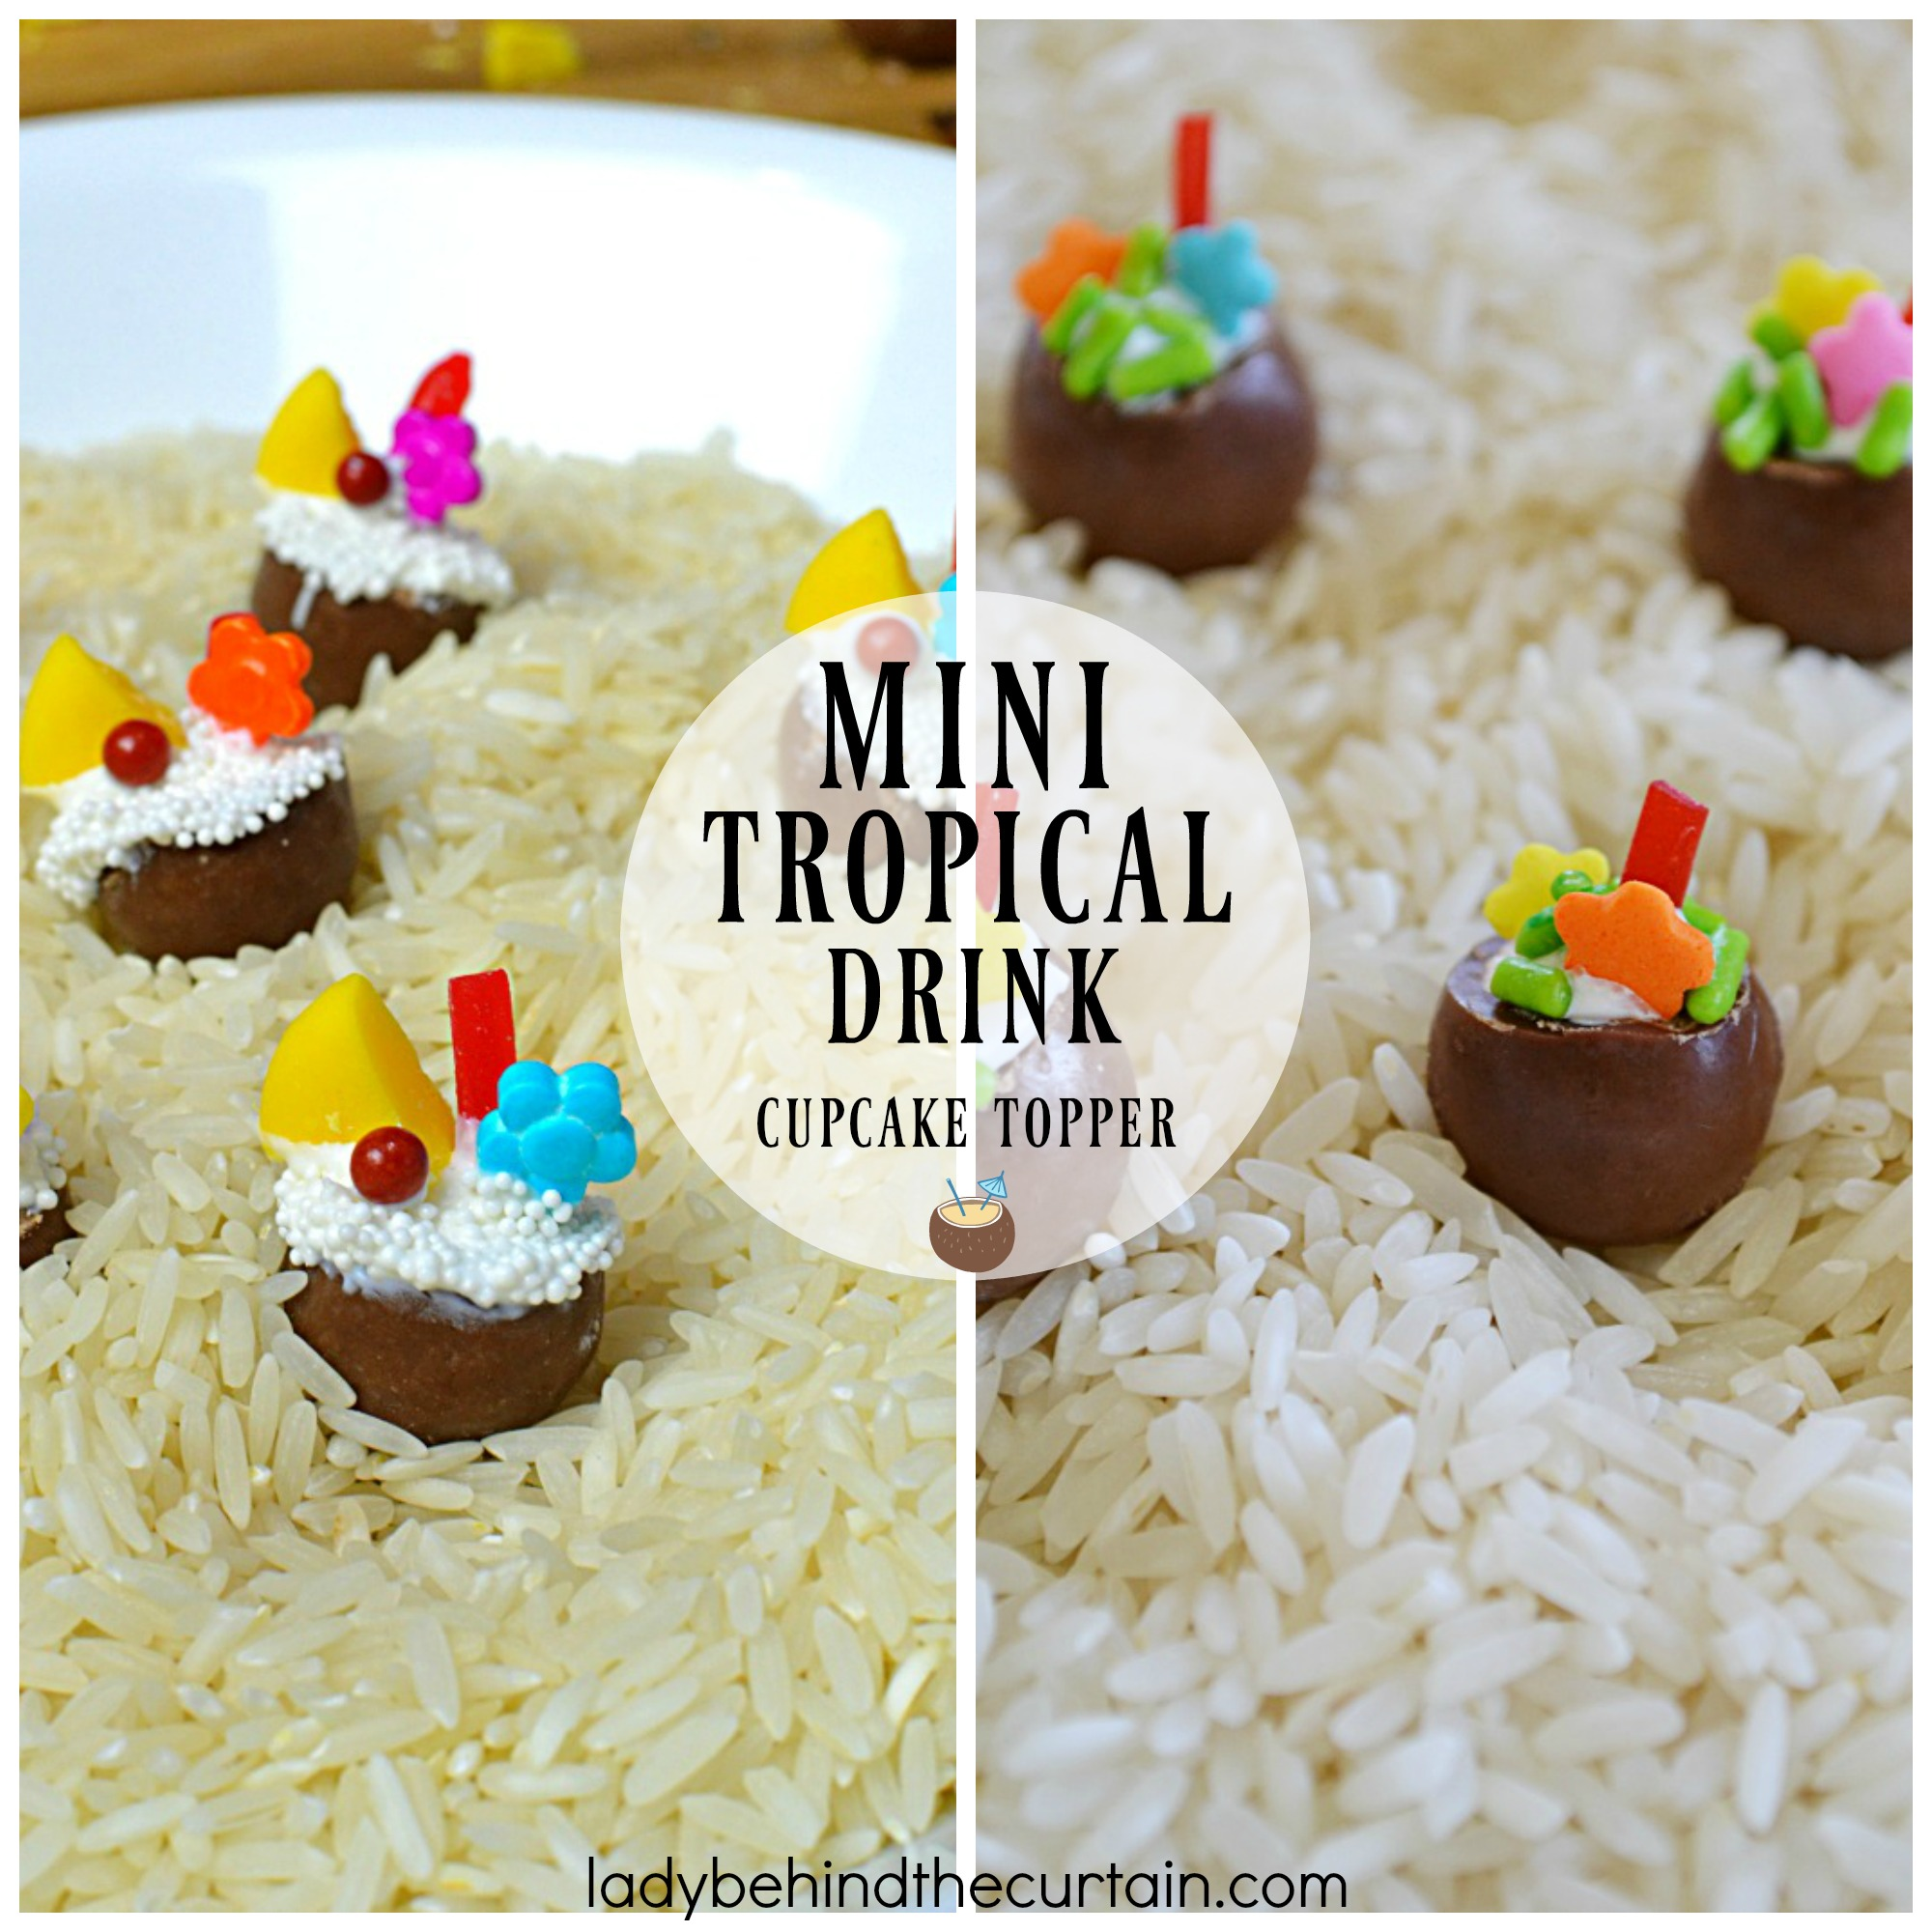 Mini Tropical Drink Cupcake Toppers | Make edible cupcake toppers and add some fun to your party! These adorable toppers are easy to make and will add something special to your cupcakes.